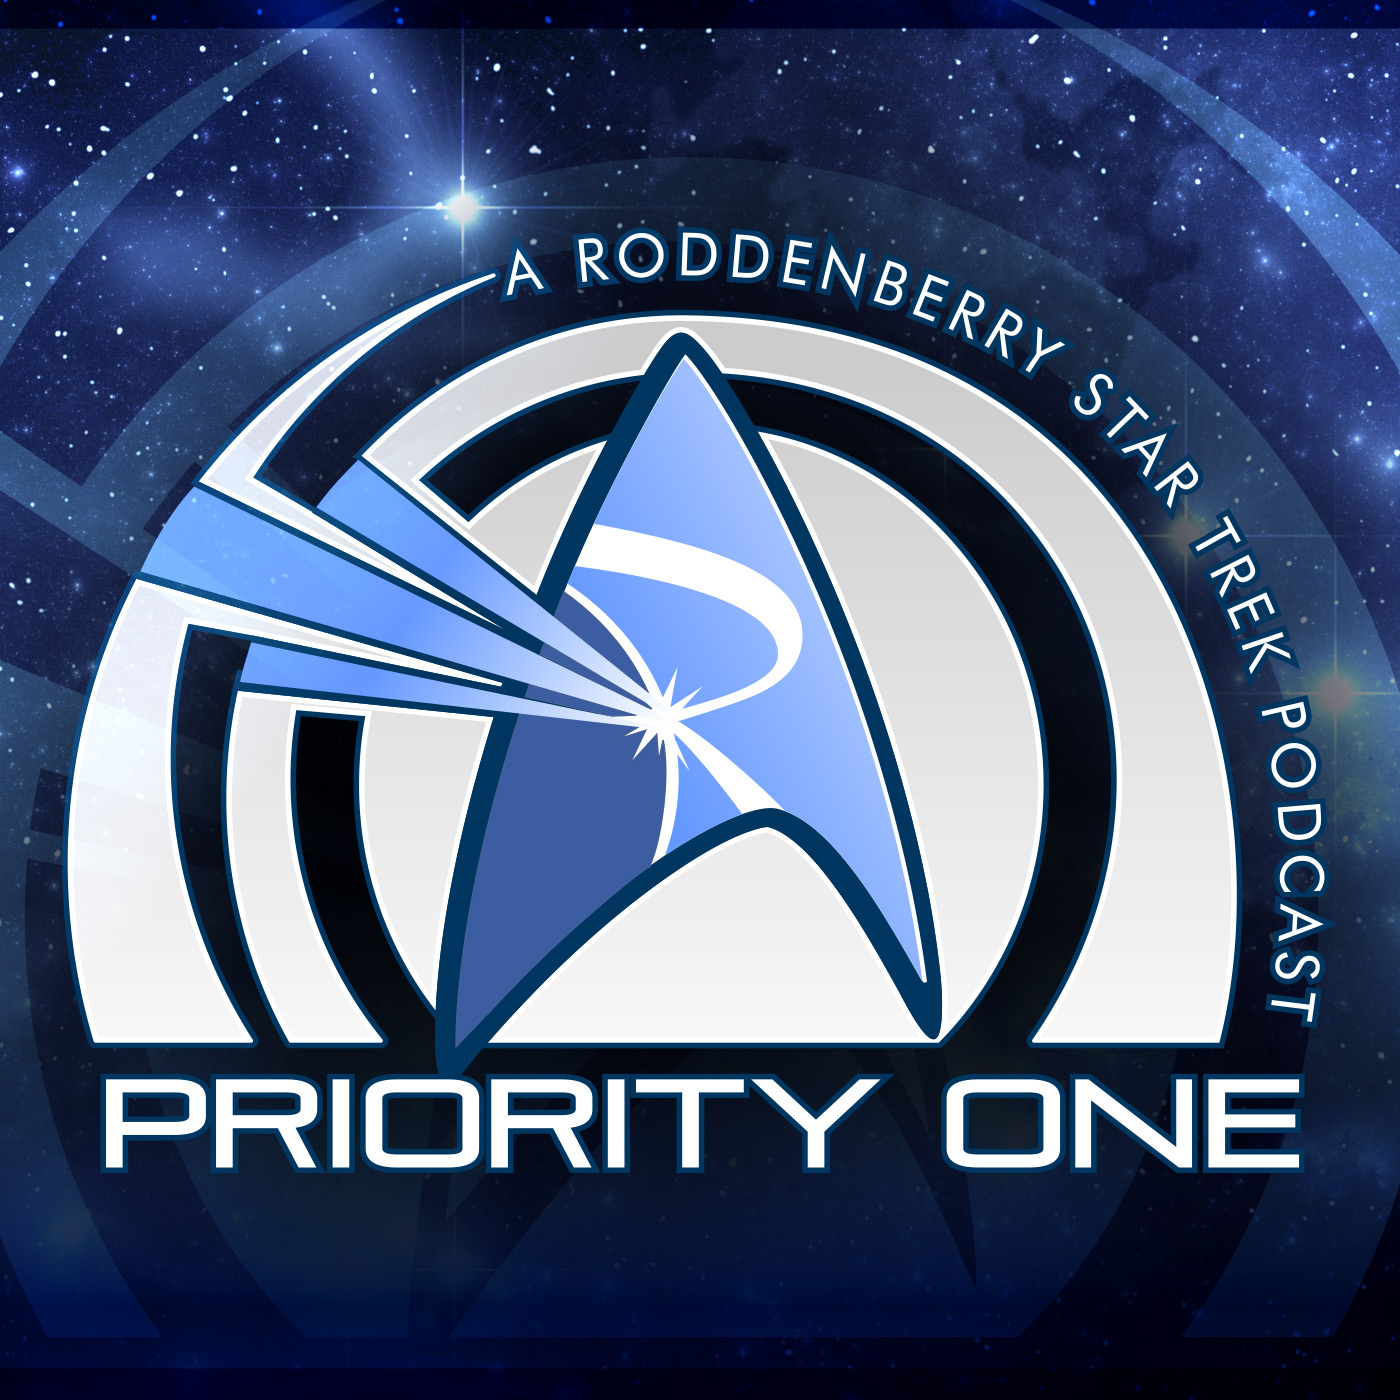 Artwork for 383 - Muddy Waters | Priority One: A Roddenberry Star Trek Podcast